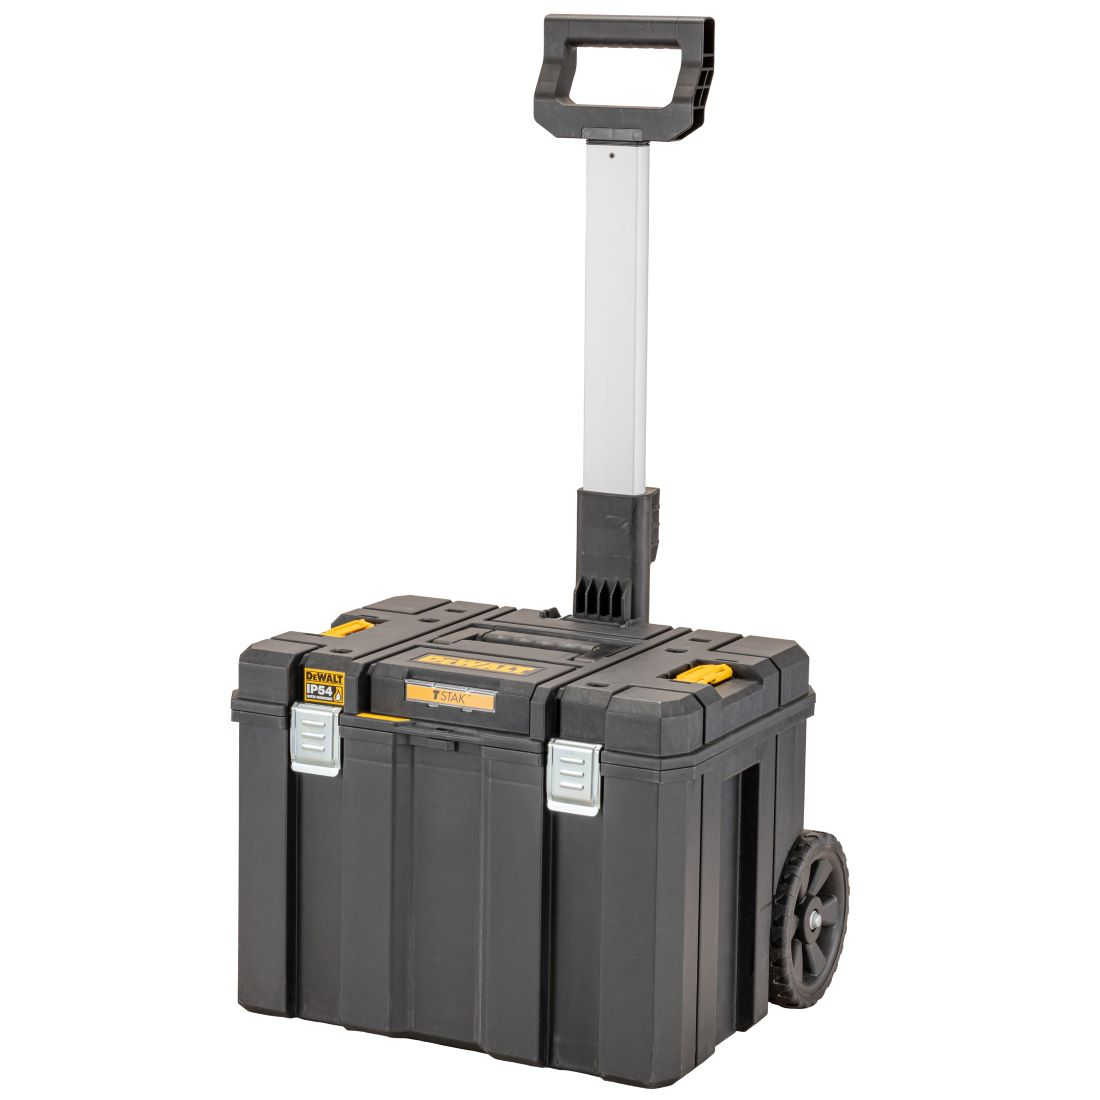 TSTAK Mobile Storage Box DWST83347-1